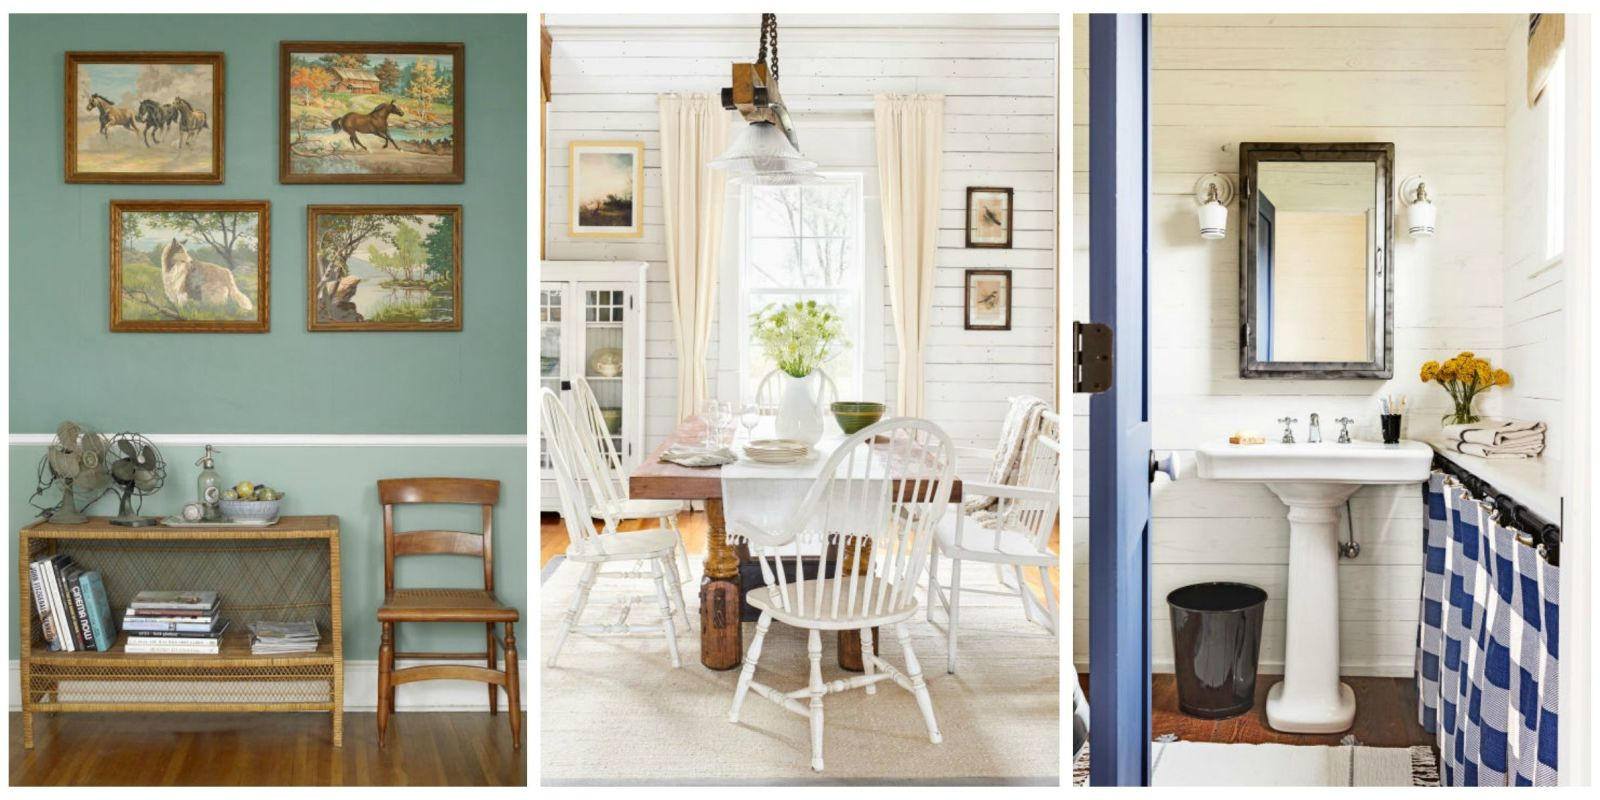 30 Inexpensive Decorating Ideas How To Decorate On A Budget